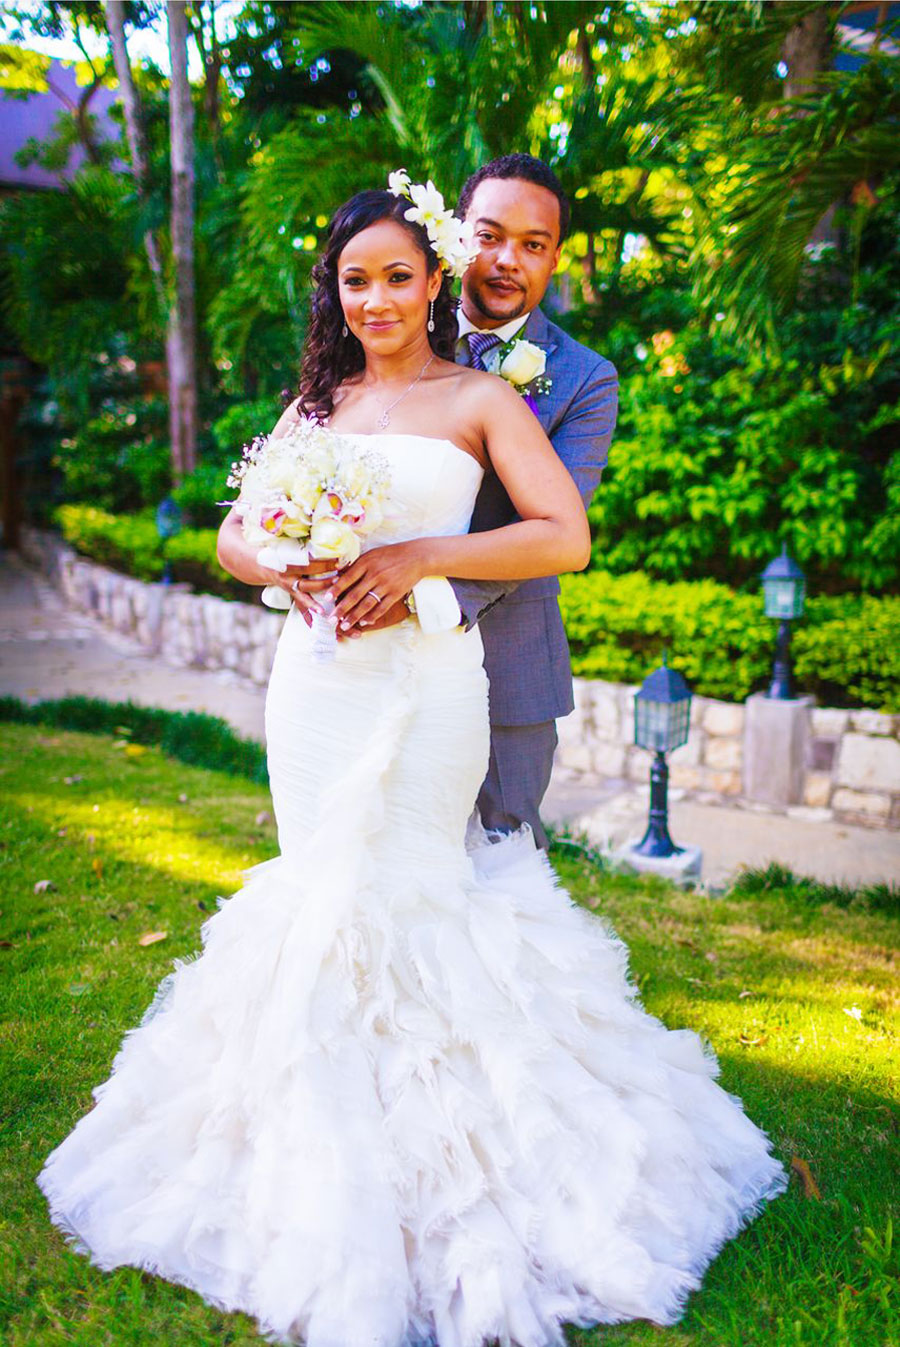 Wedding Dress For   In Jamaica : By michelle william s tropical jamaican wedding programs